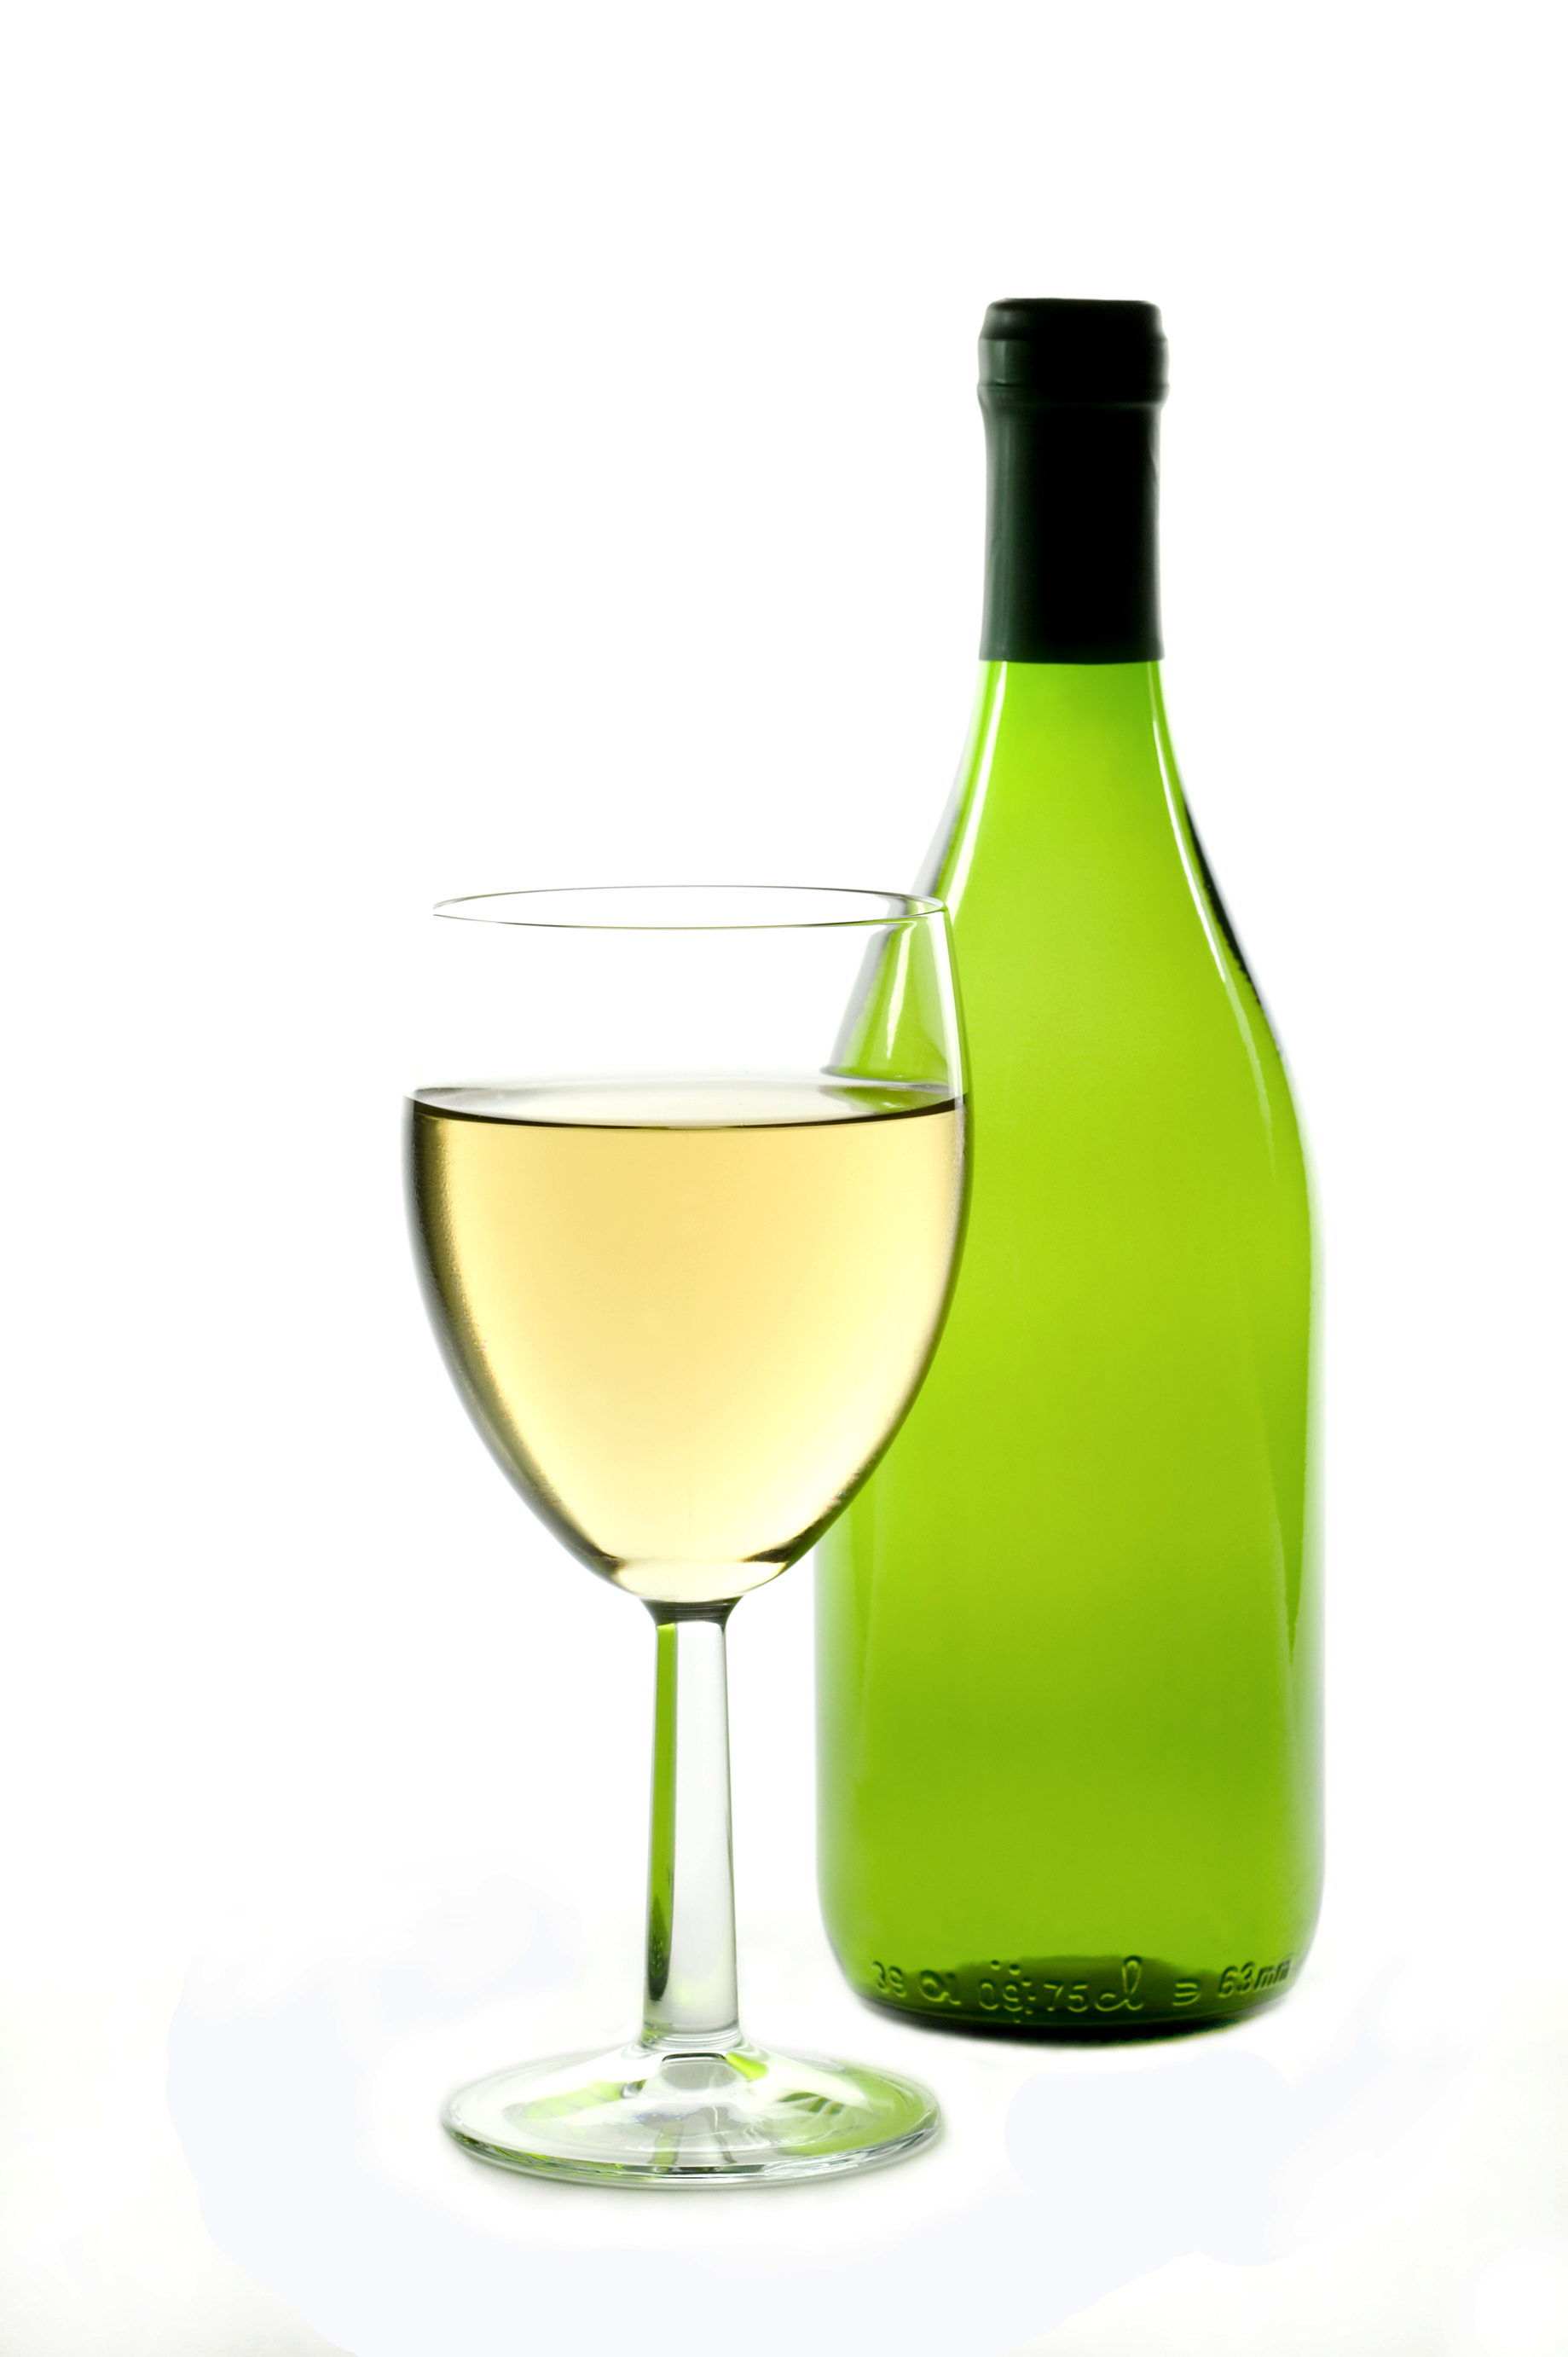 http://prospect.rsc.org/blogs/cw/wp-content/uploads/2009/04/white-wine-bottle-istock_000002946780large.jpg